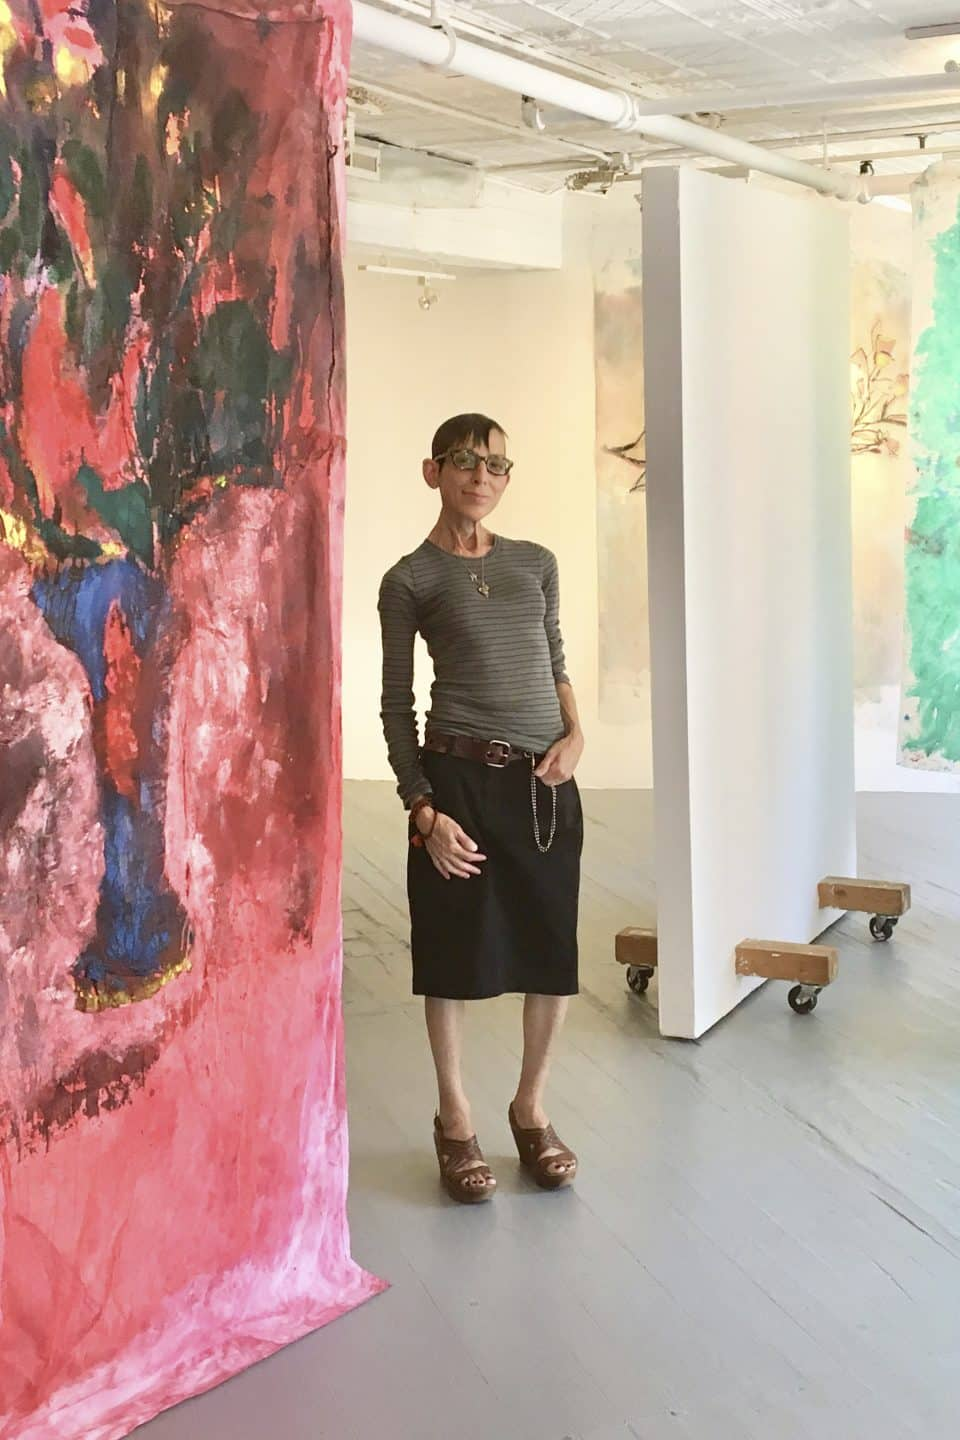 Ivy Brown's Meatpacking District Gallery Is a Space Where Creatives Can Play